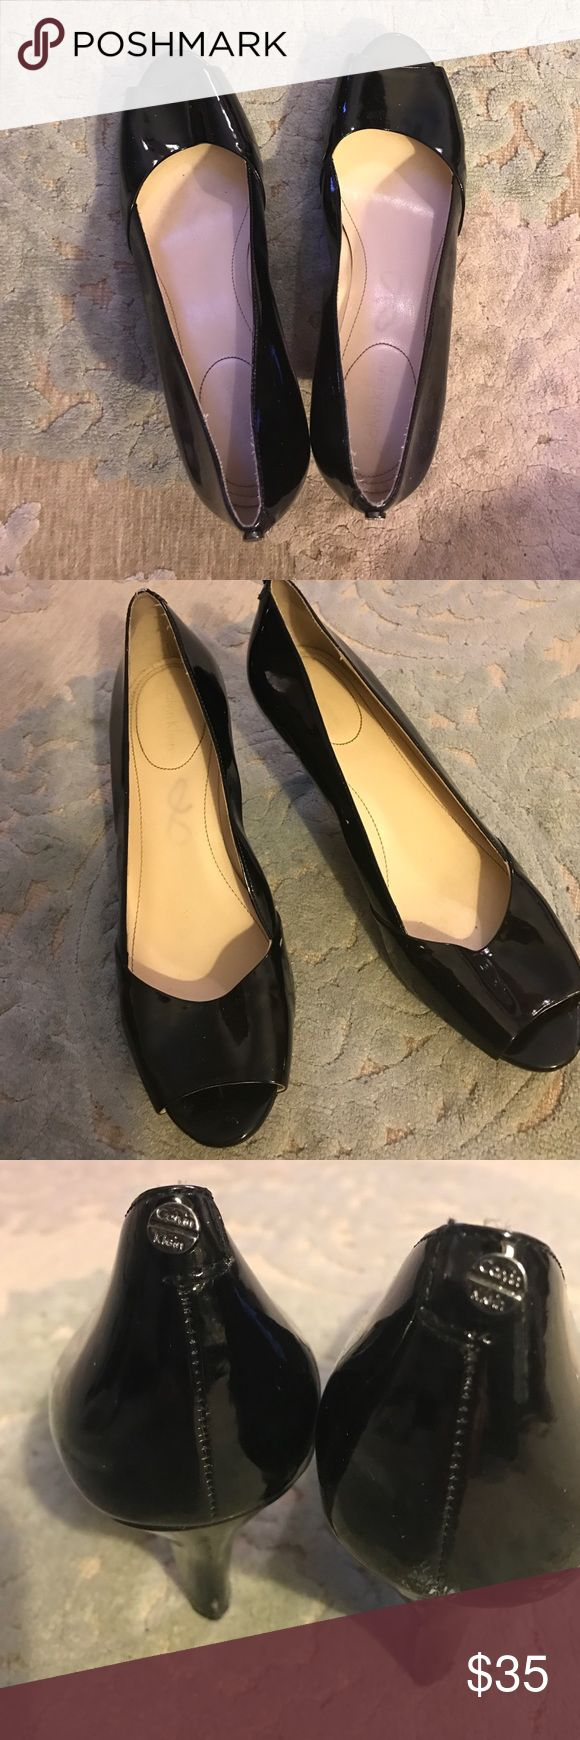 Calvin Klein pumps Black patent leather, open toe. Size 8. Heel and bottoms in great condition. Worn once on carpet. Calvin Klein Shoes Flats & Loafers